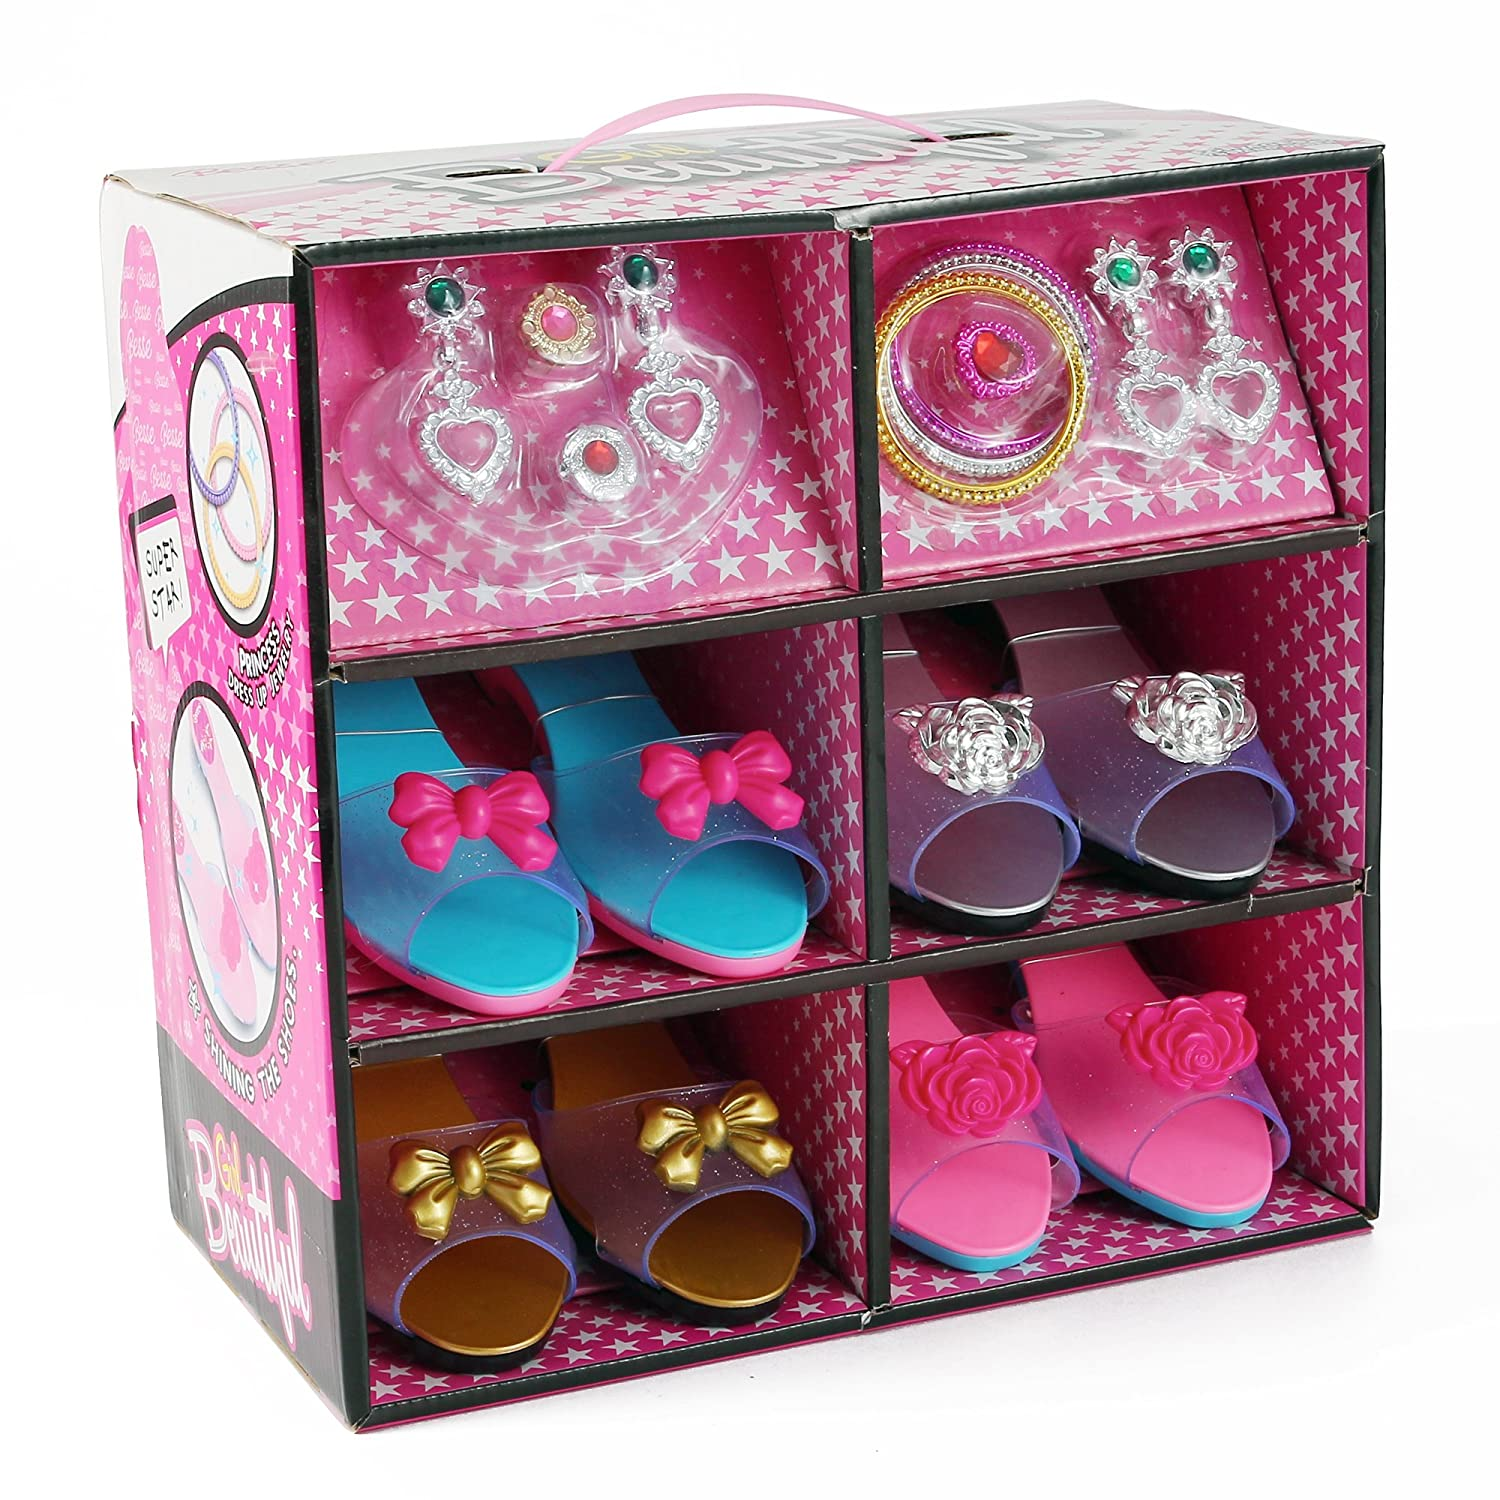 Dress Up Pretend Play Images On: Dress Up Shoes Preschool Girls Pretend Play Costume